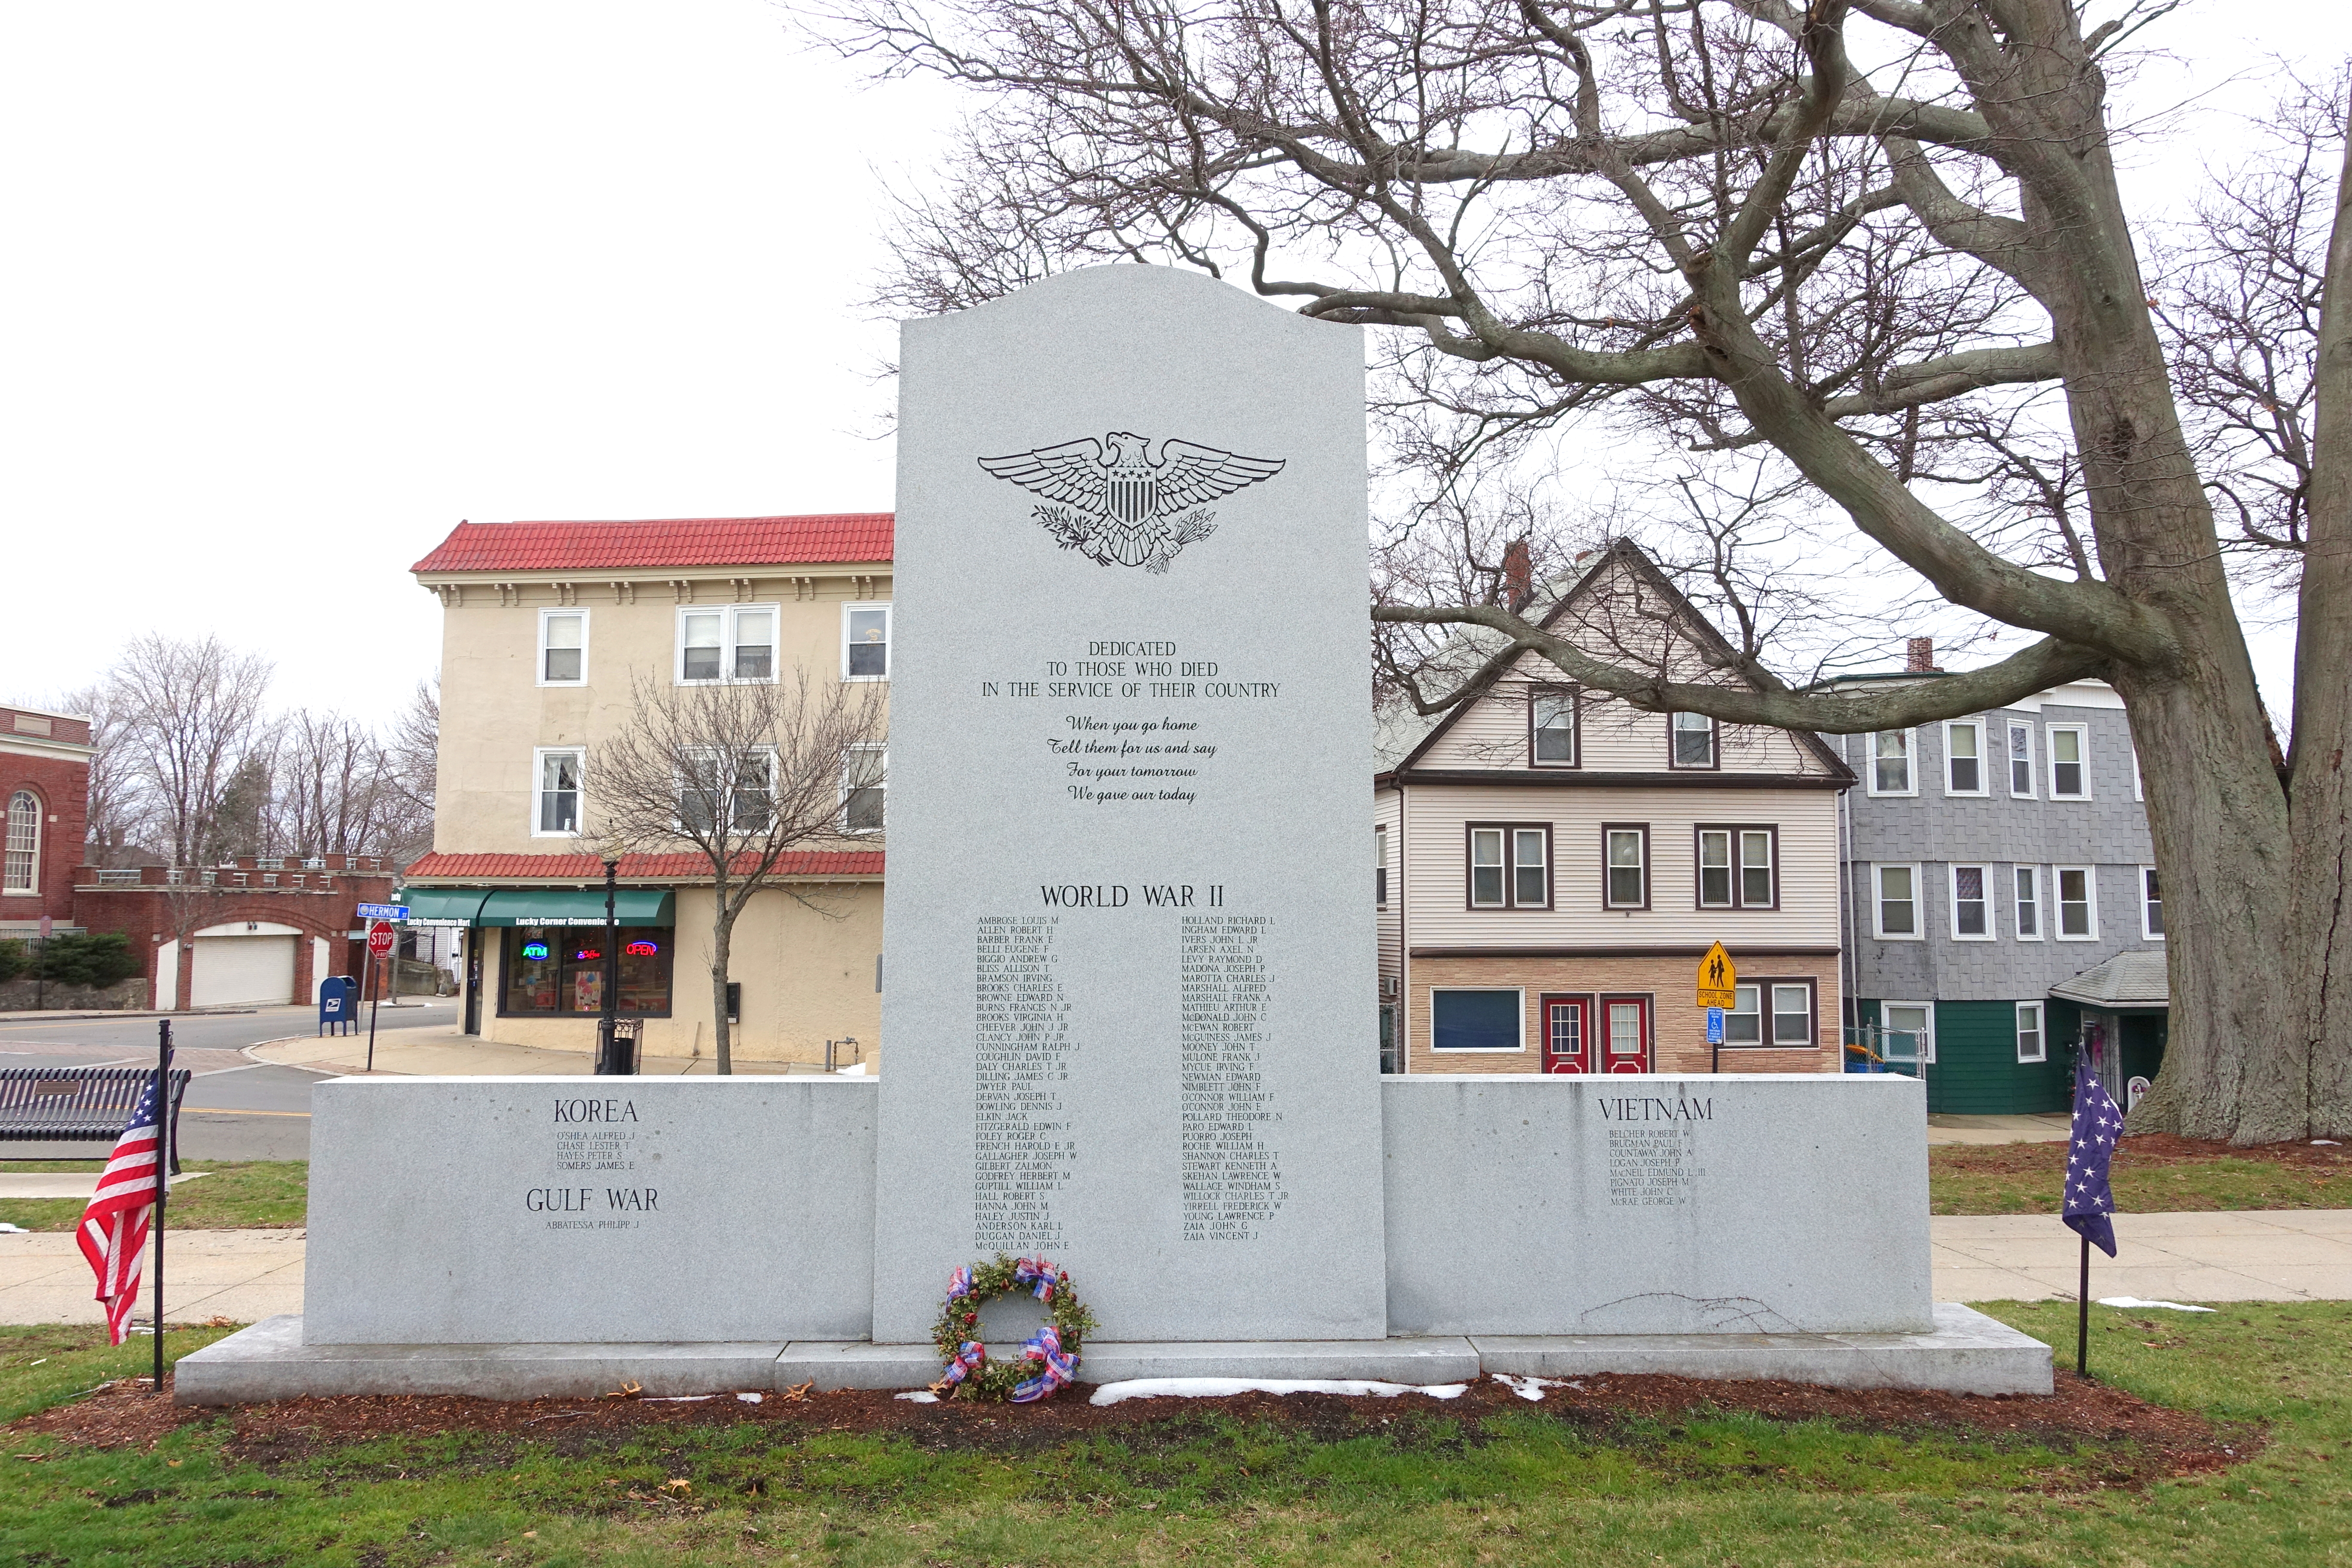 Photo of the monument, which stands in the middle of Metcalfe Square in Winthrop, Massachusetts. On this monument is all the names of the men and woman from Winthrop who served in World War II, Korea, Vietnam War, and Gulf War respectively.